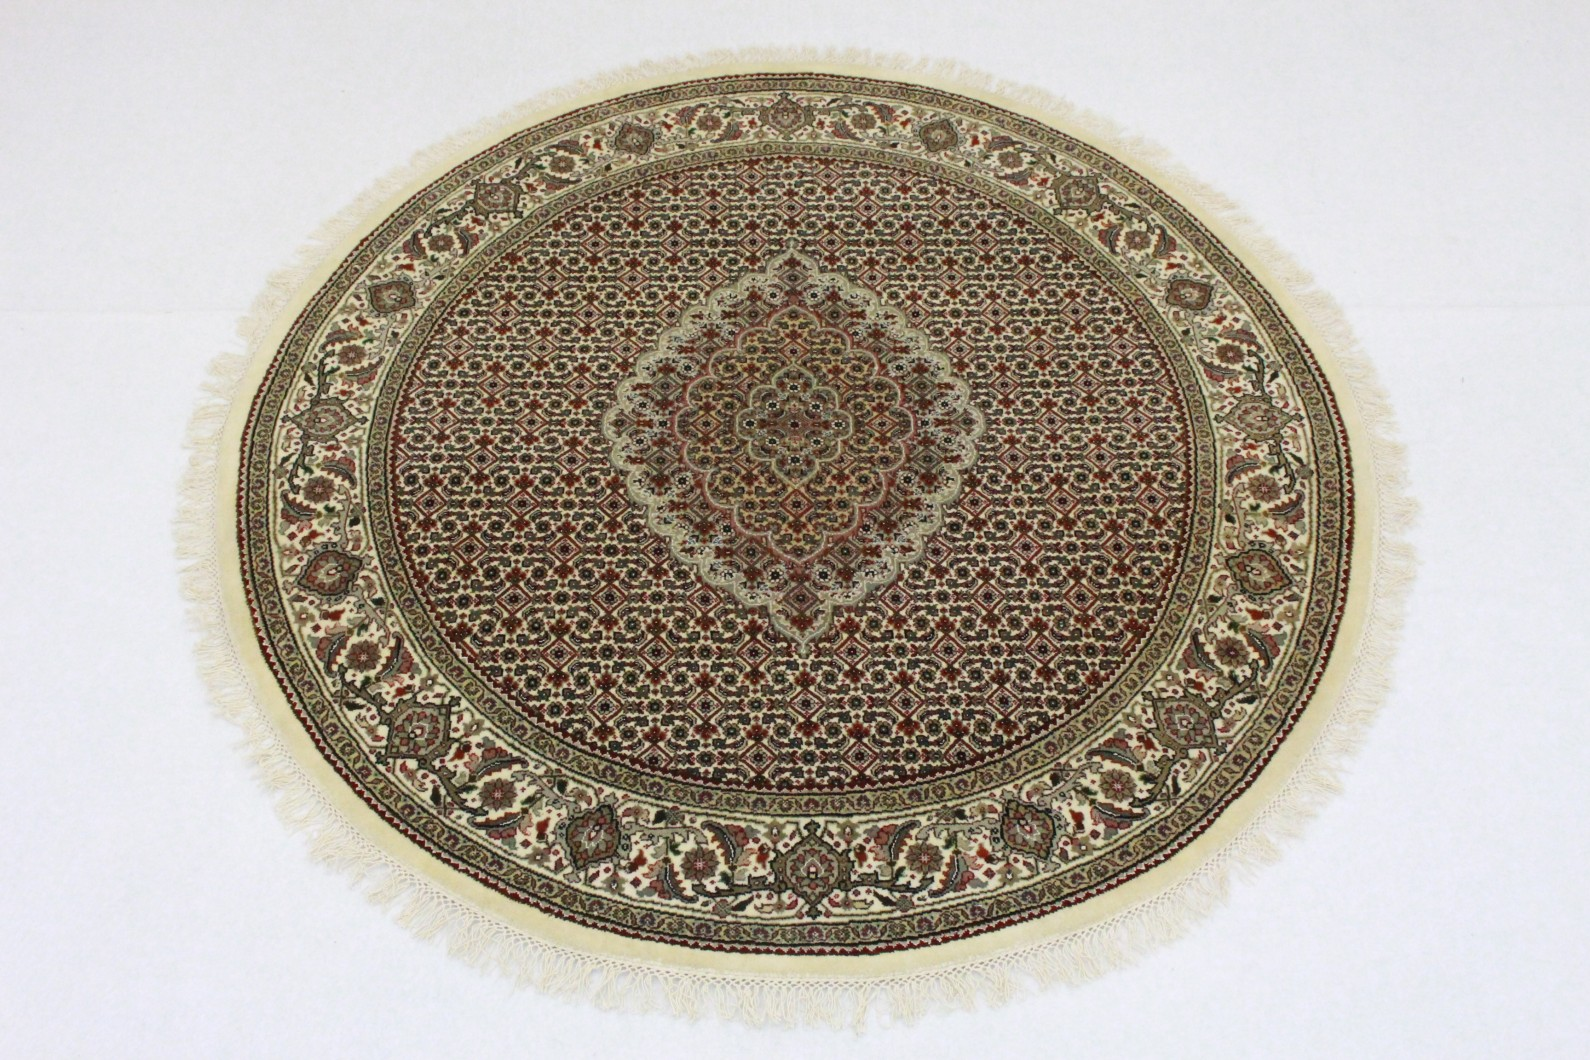 teppich rund rot beige in 150x150 5130 294 bei kaufen. Black Bedroom Furniture Sets. Home Design Ideas